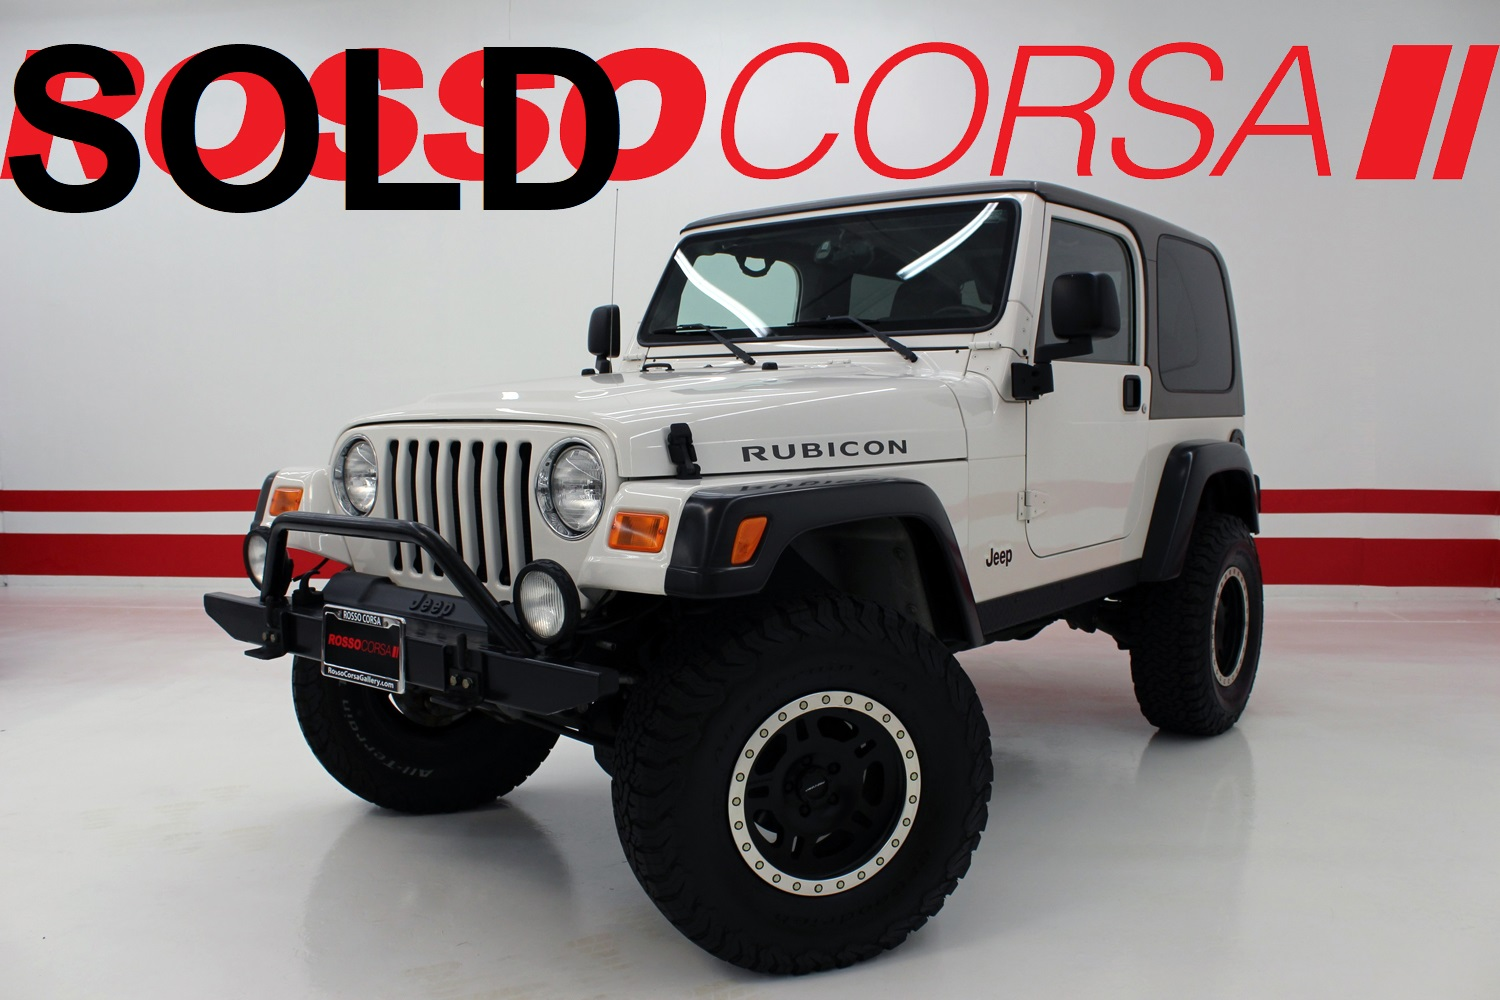 2003 Jeep Wrangler Rubicon (CUSTOM)